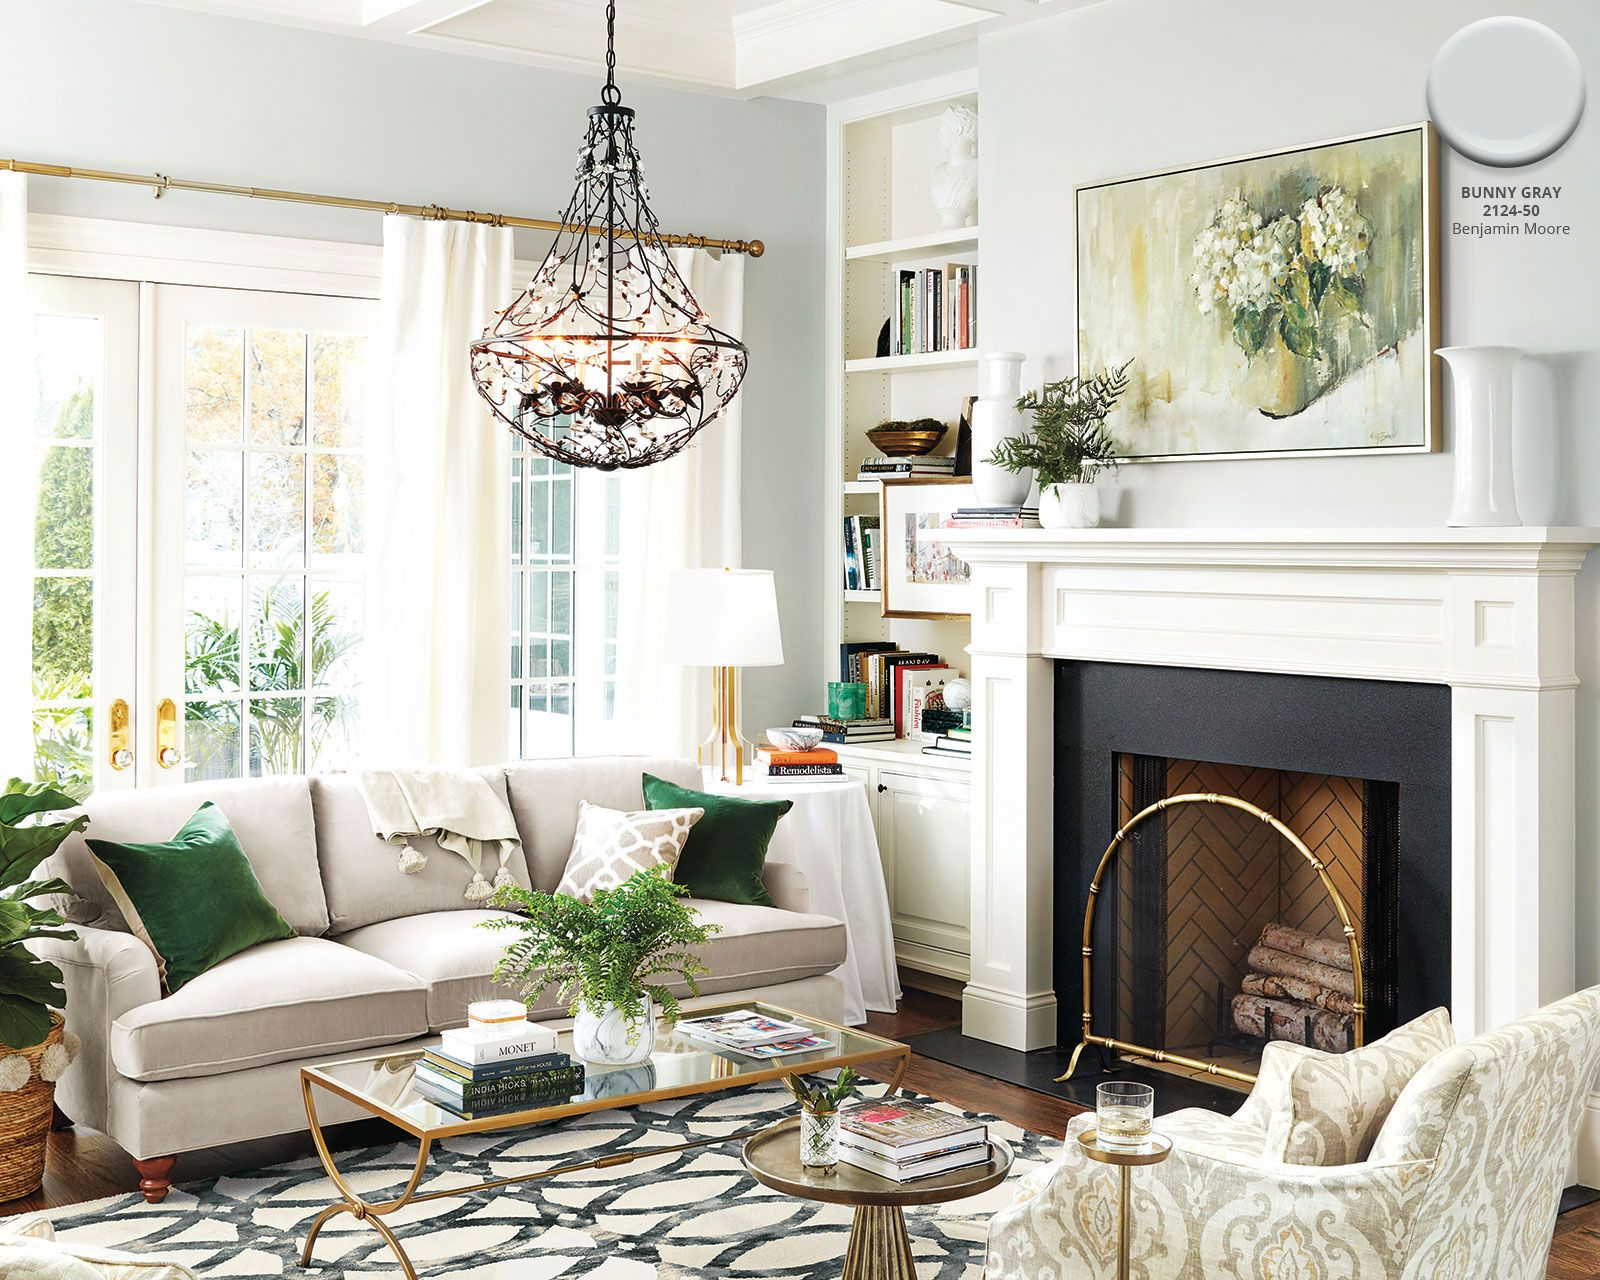 Ballard Designs Spring 2018 Paint Colors | Family room ...